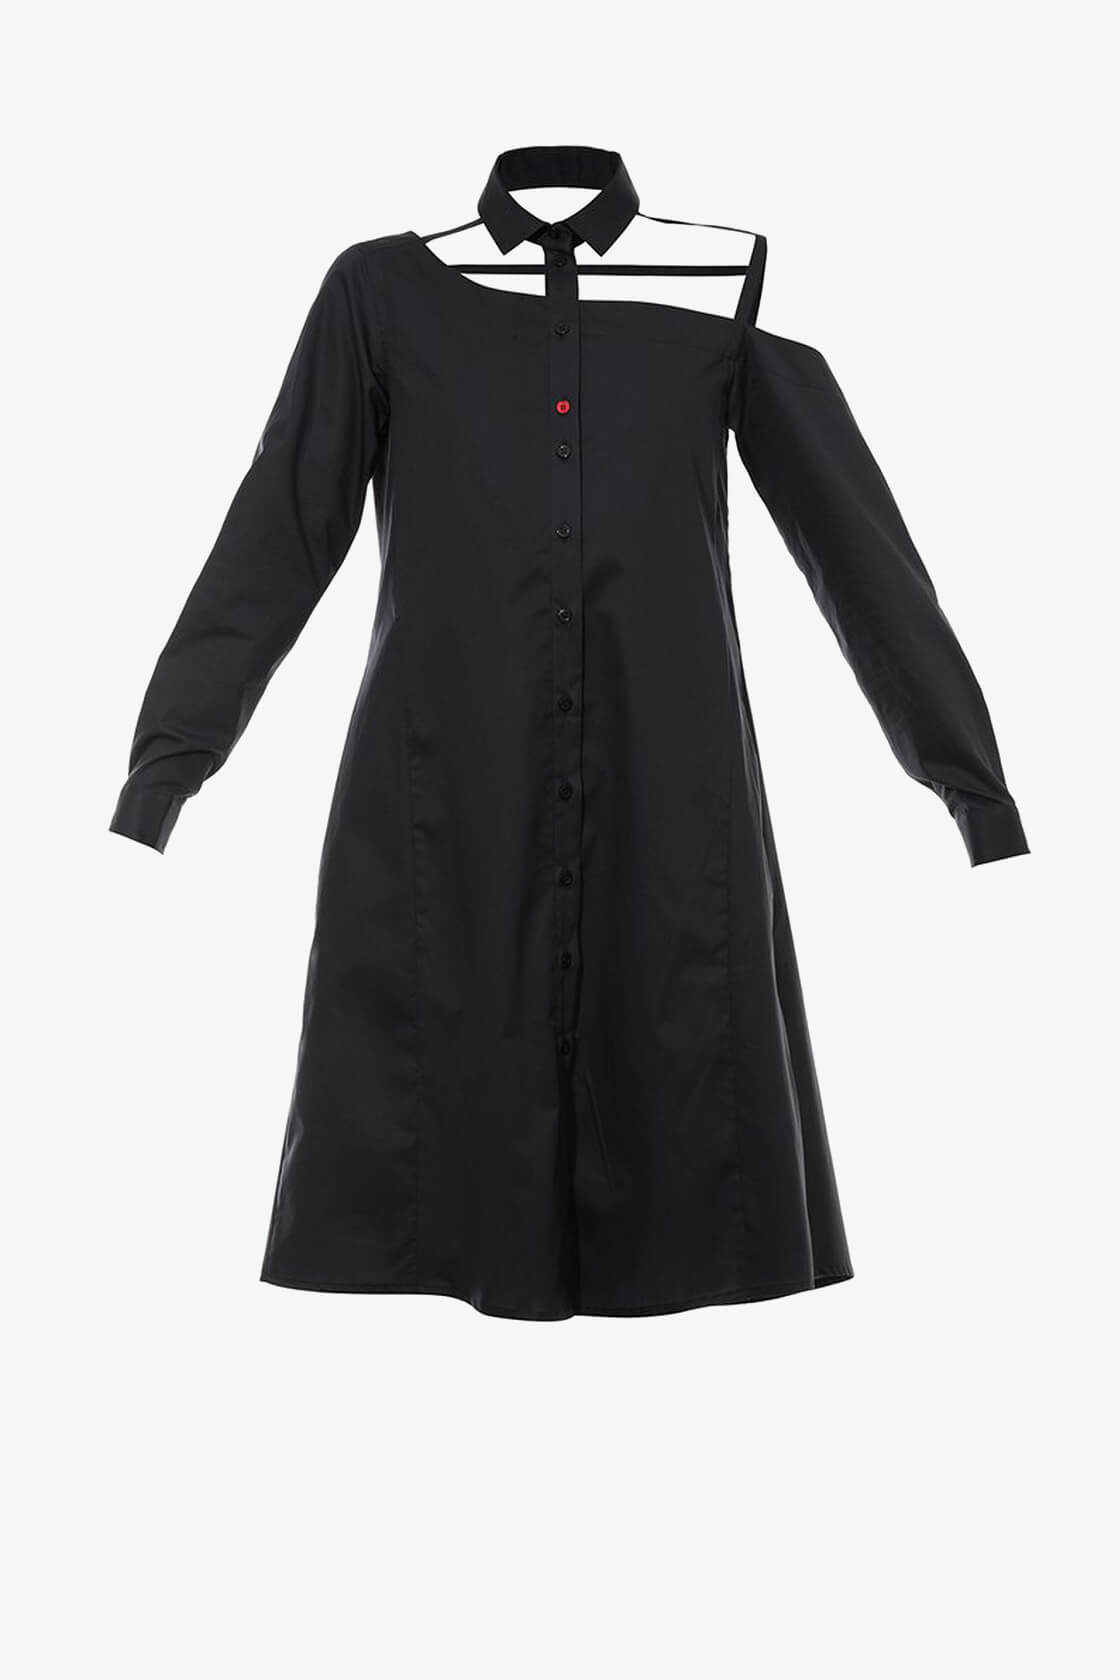 OL10000214 One shoulder shirtdress black1